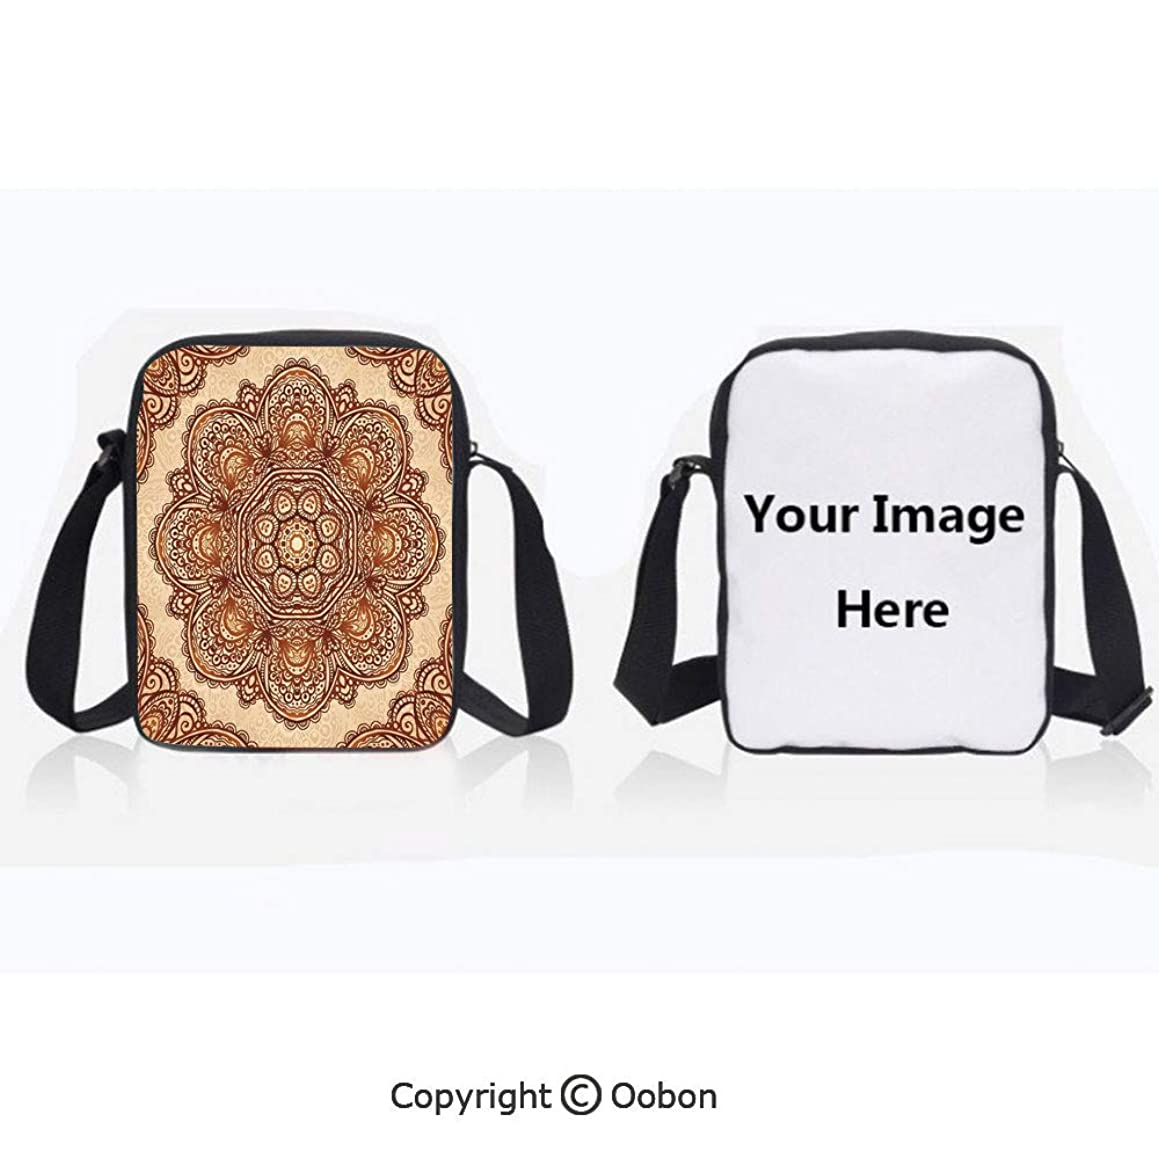 Multipurpose Crossbody Bag For Sports Unisex Teen Mehndi Style Floral Flower with Abstract Paisley Backdrop Art Print Light Brown and Dark Brown Anti-Theft Travel Hiking Polyester Water Proof Bag